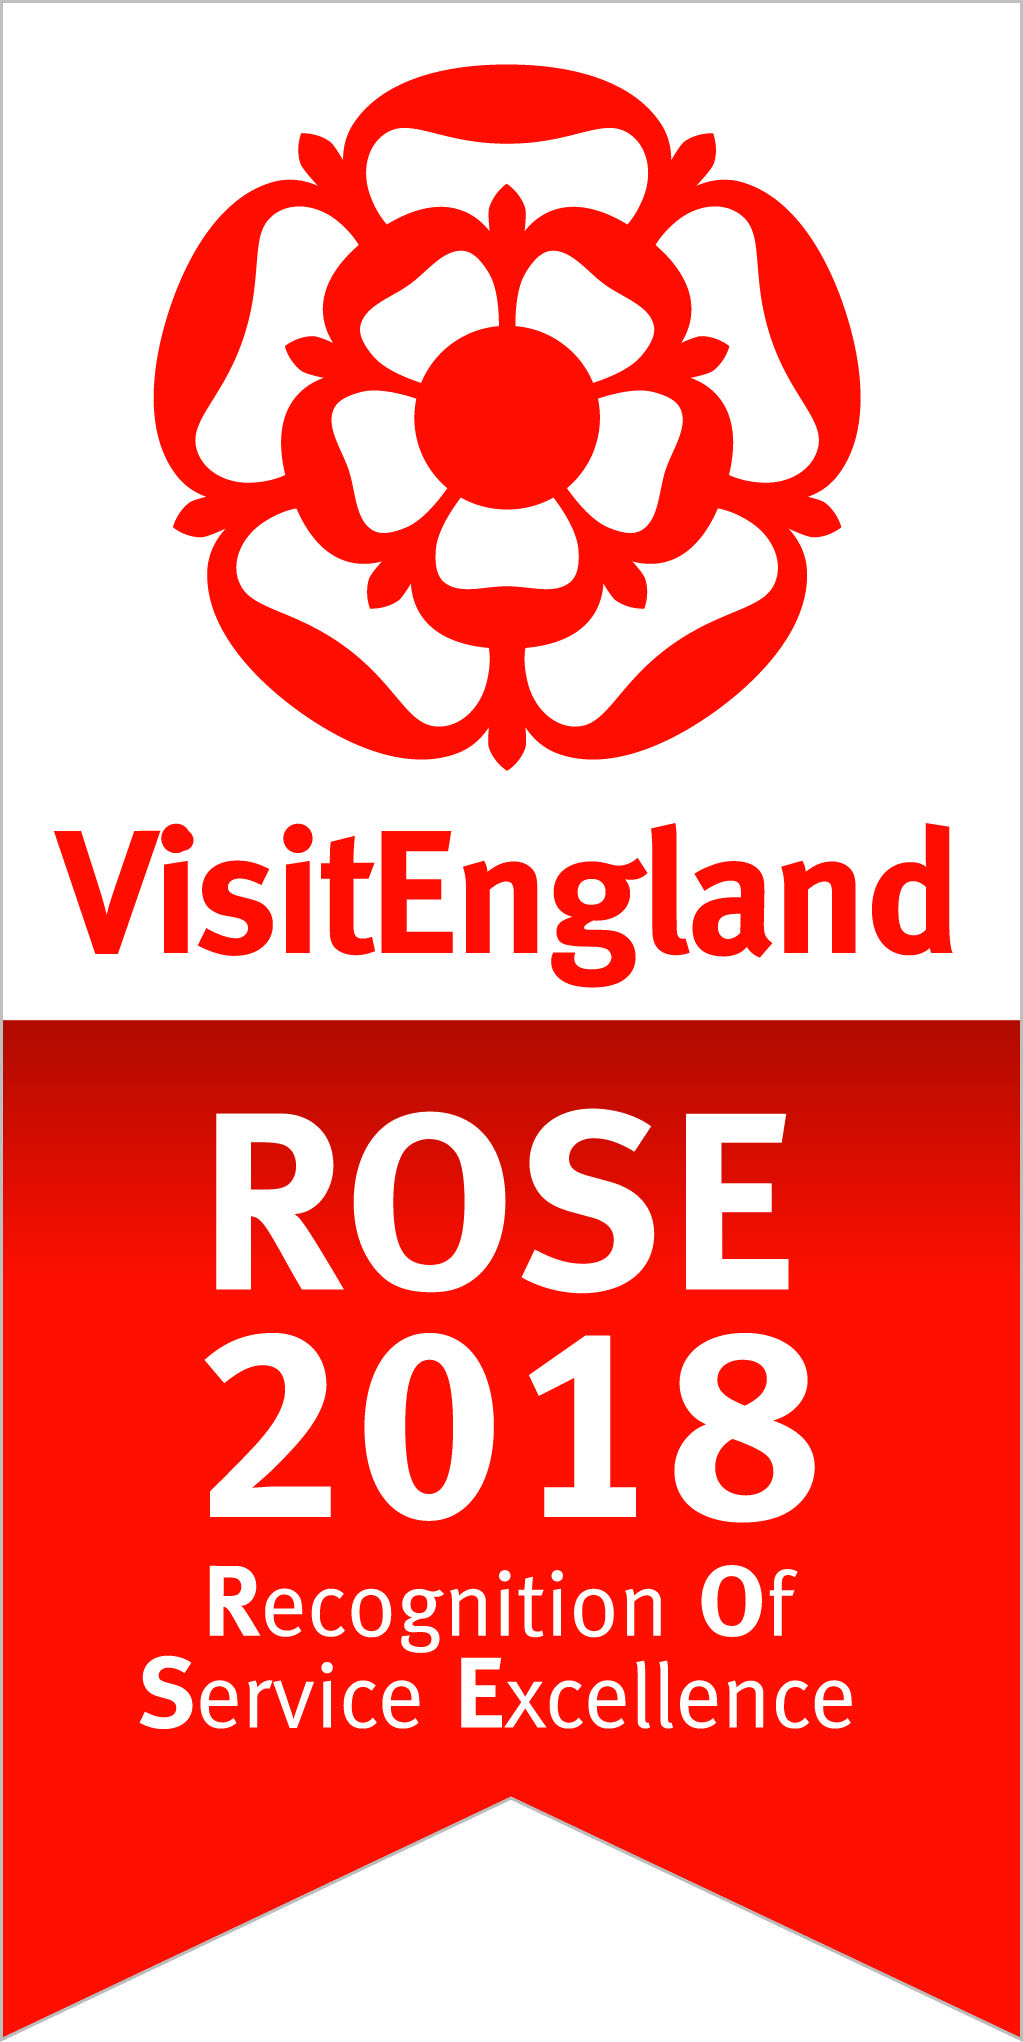 Visit England - Rose Award Winner